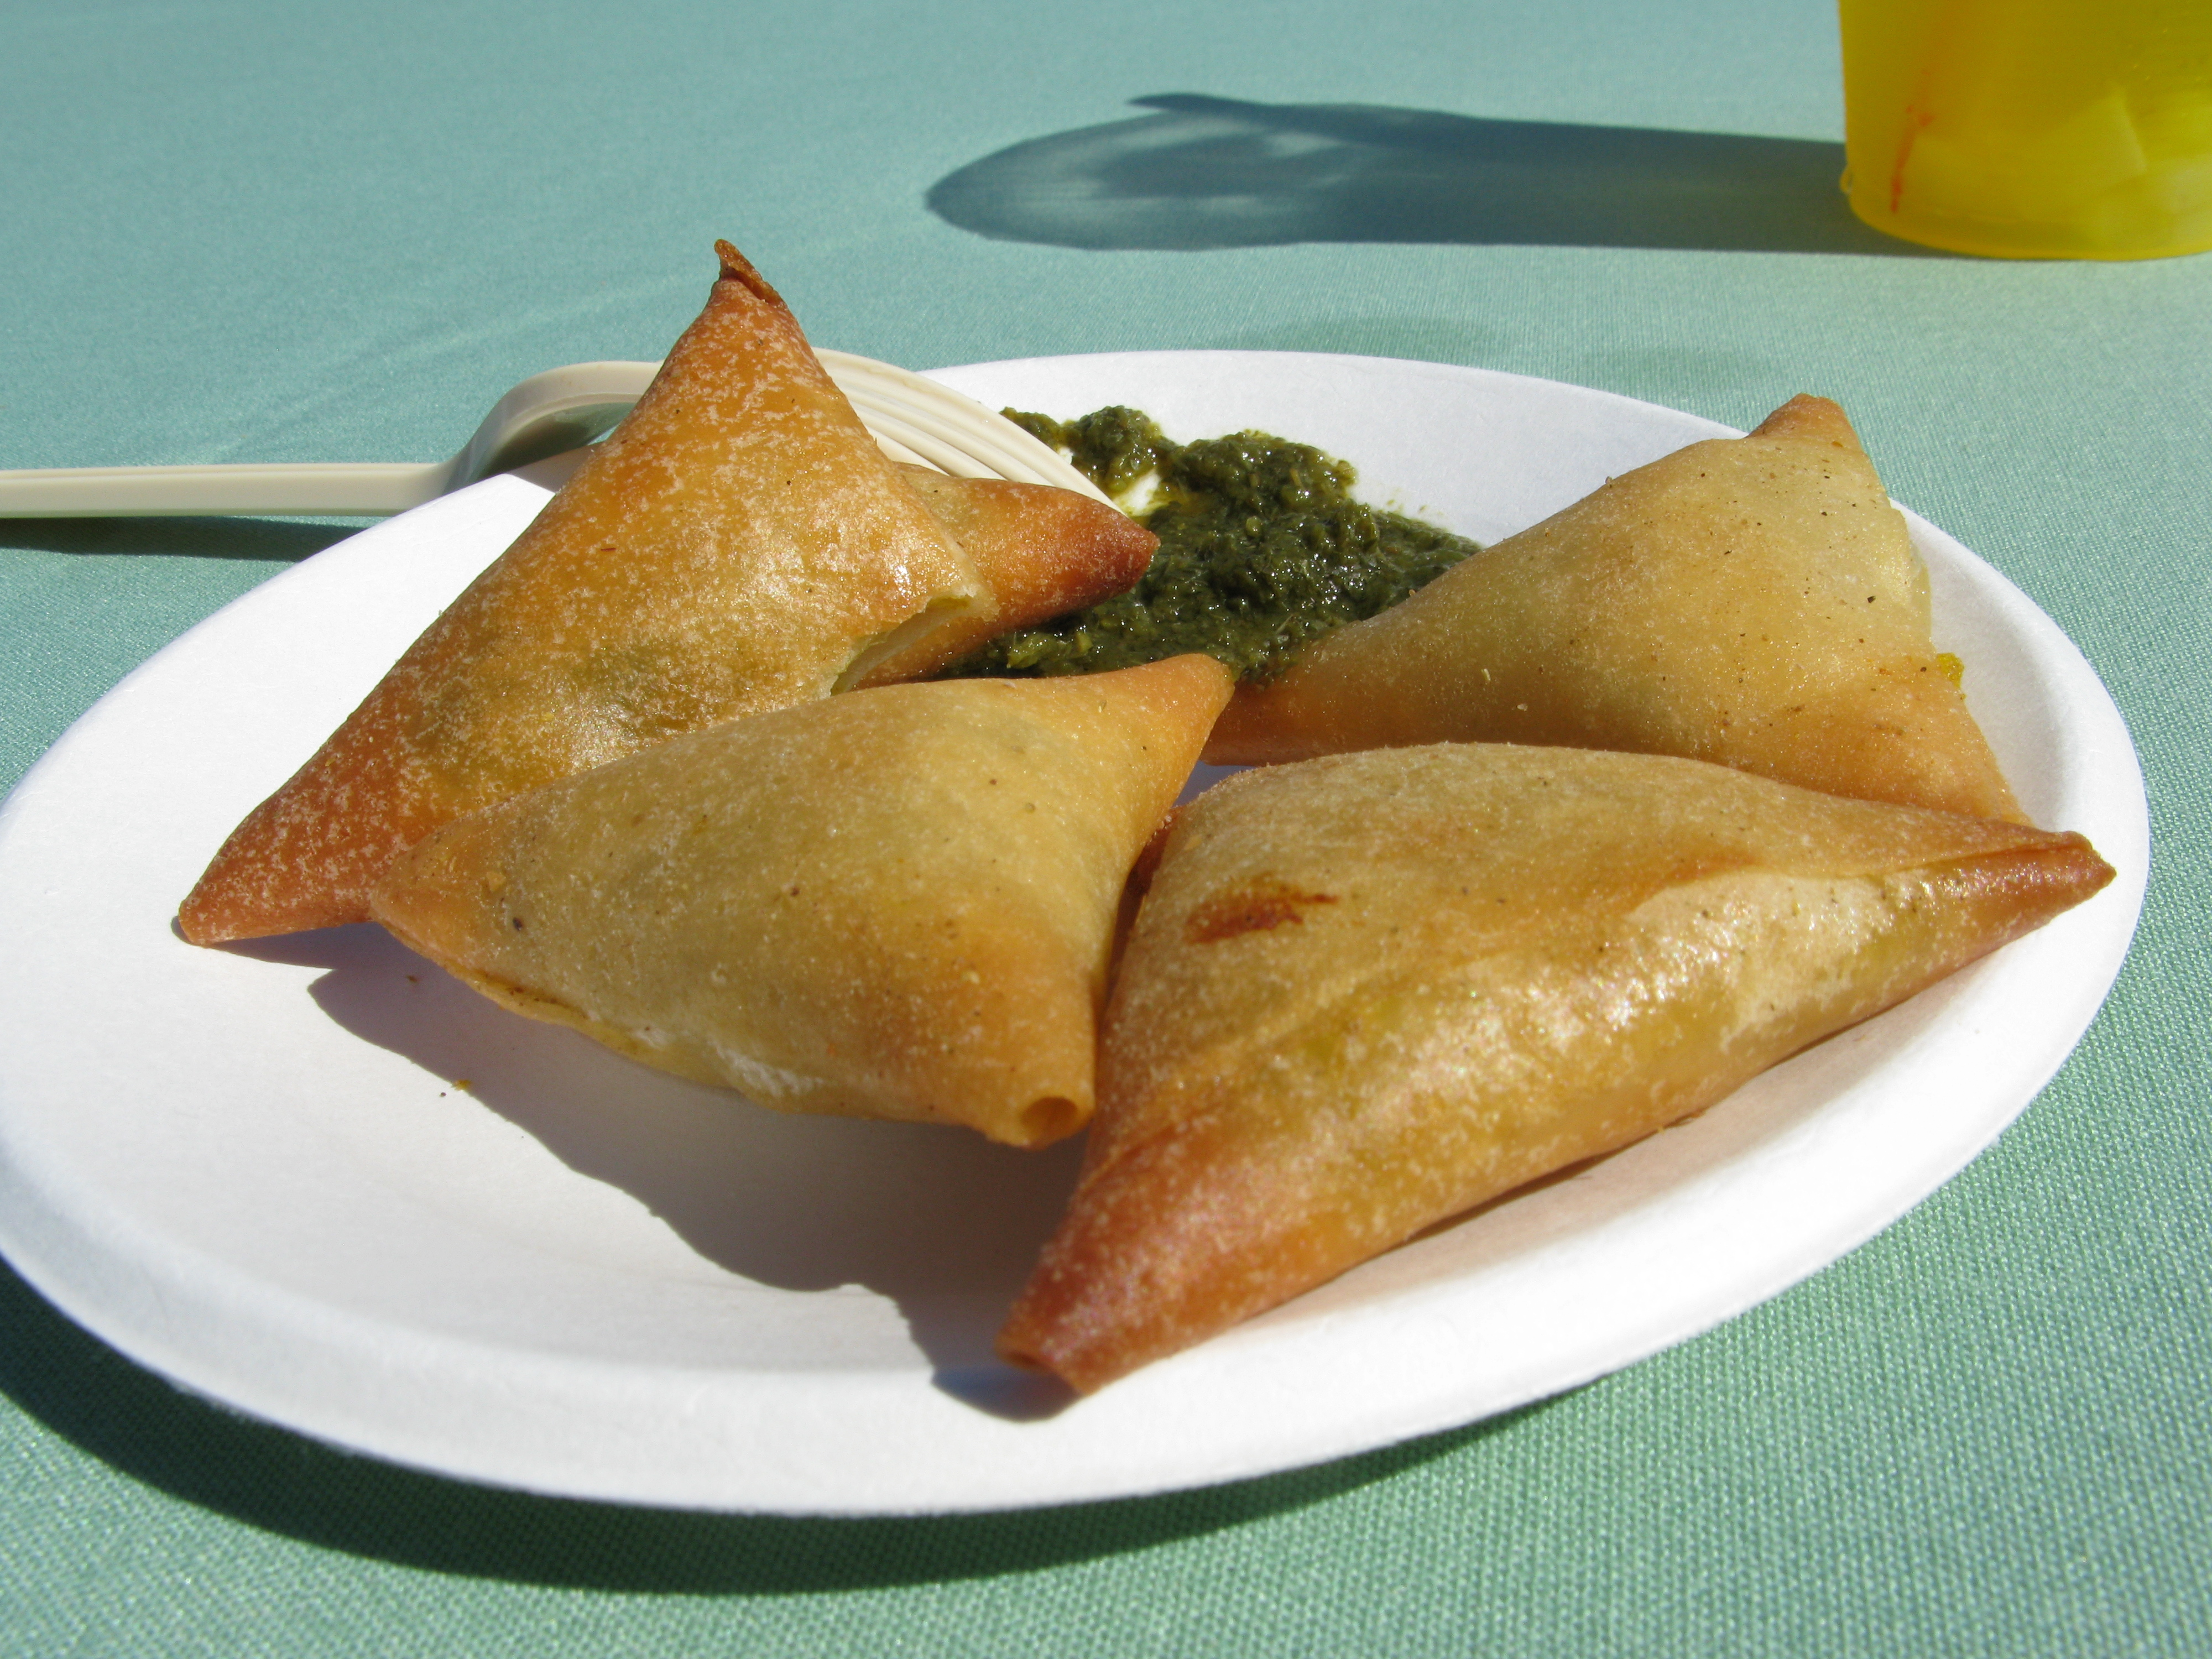 Samosas. Photo by and courtesy of Flickr user Okayryan